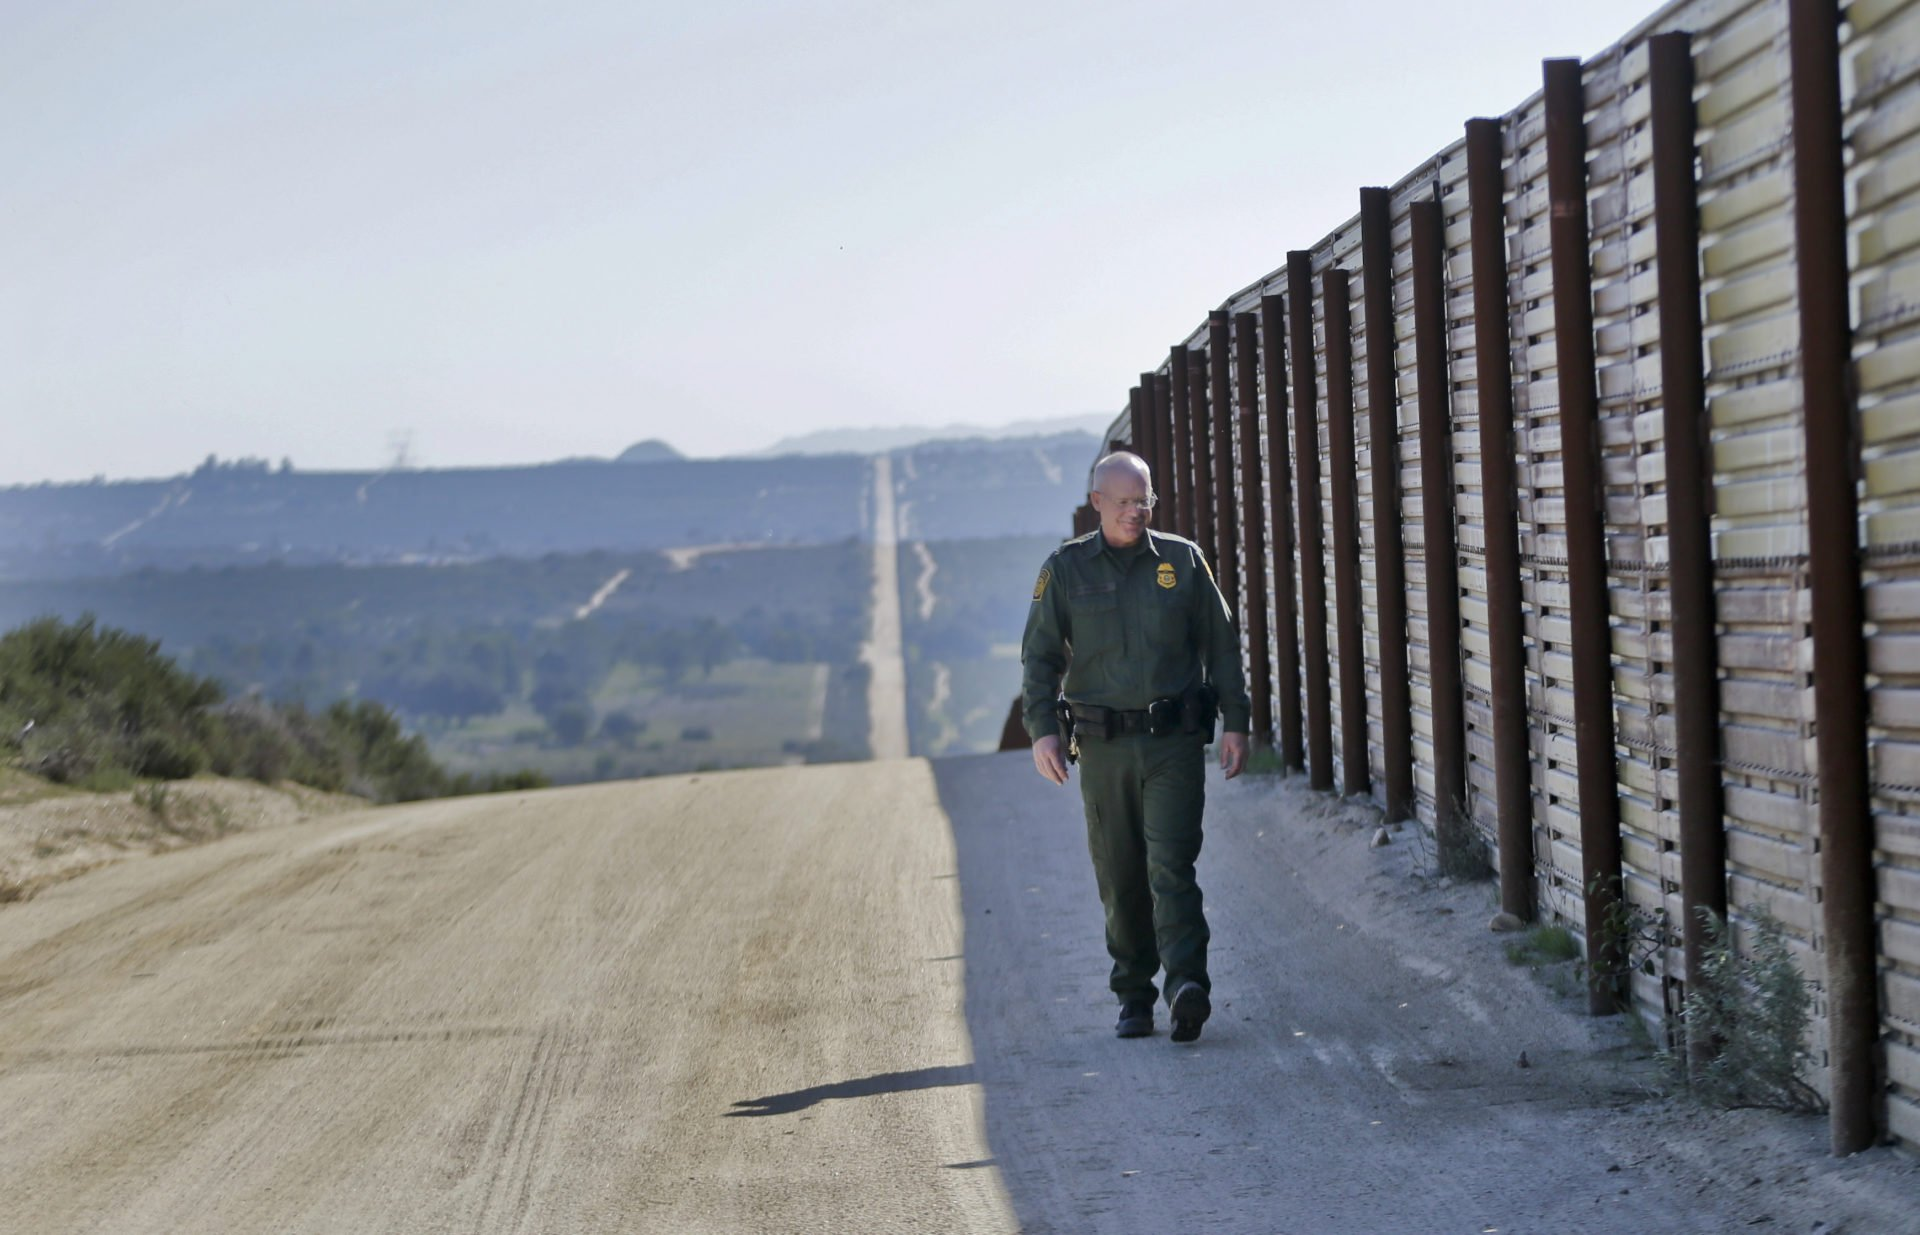 Study Trumps Border Wall Could Pay for Itself by Cutting Welfare to Illegal Immigrants VIDEO